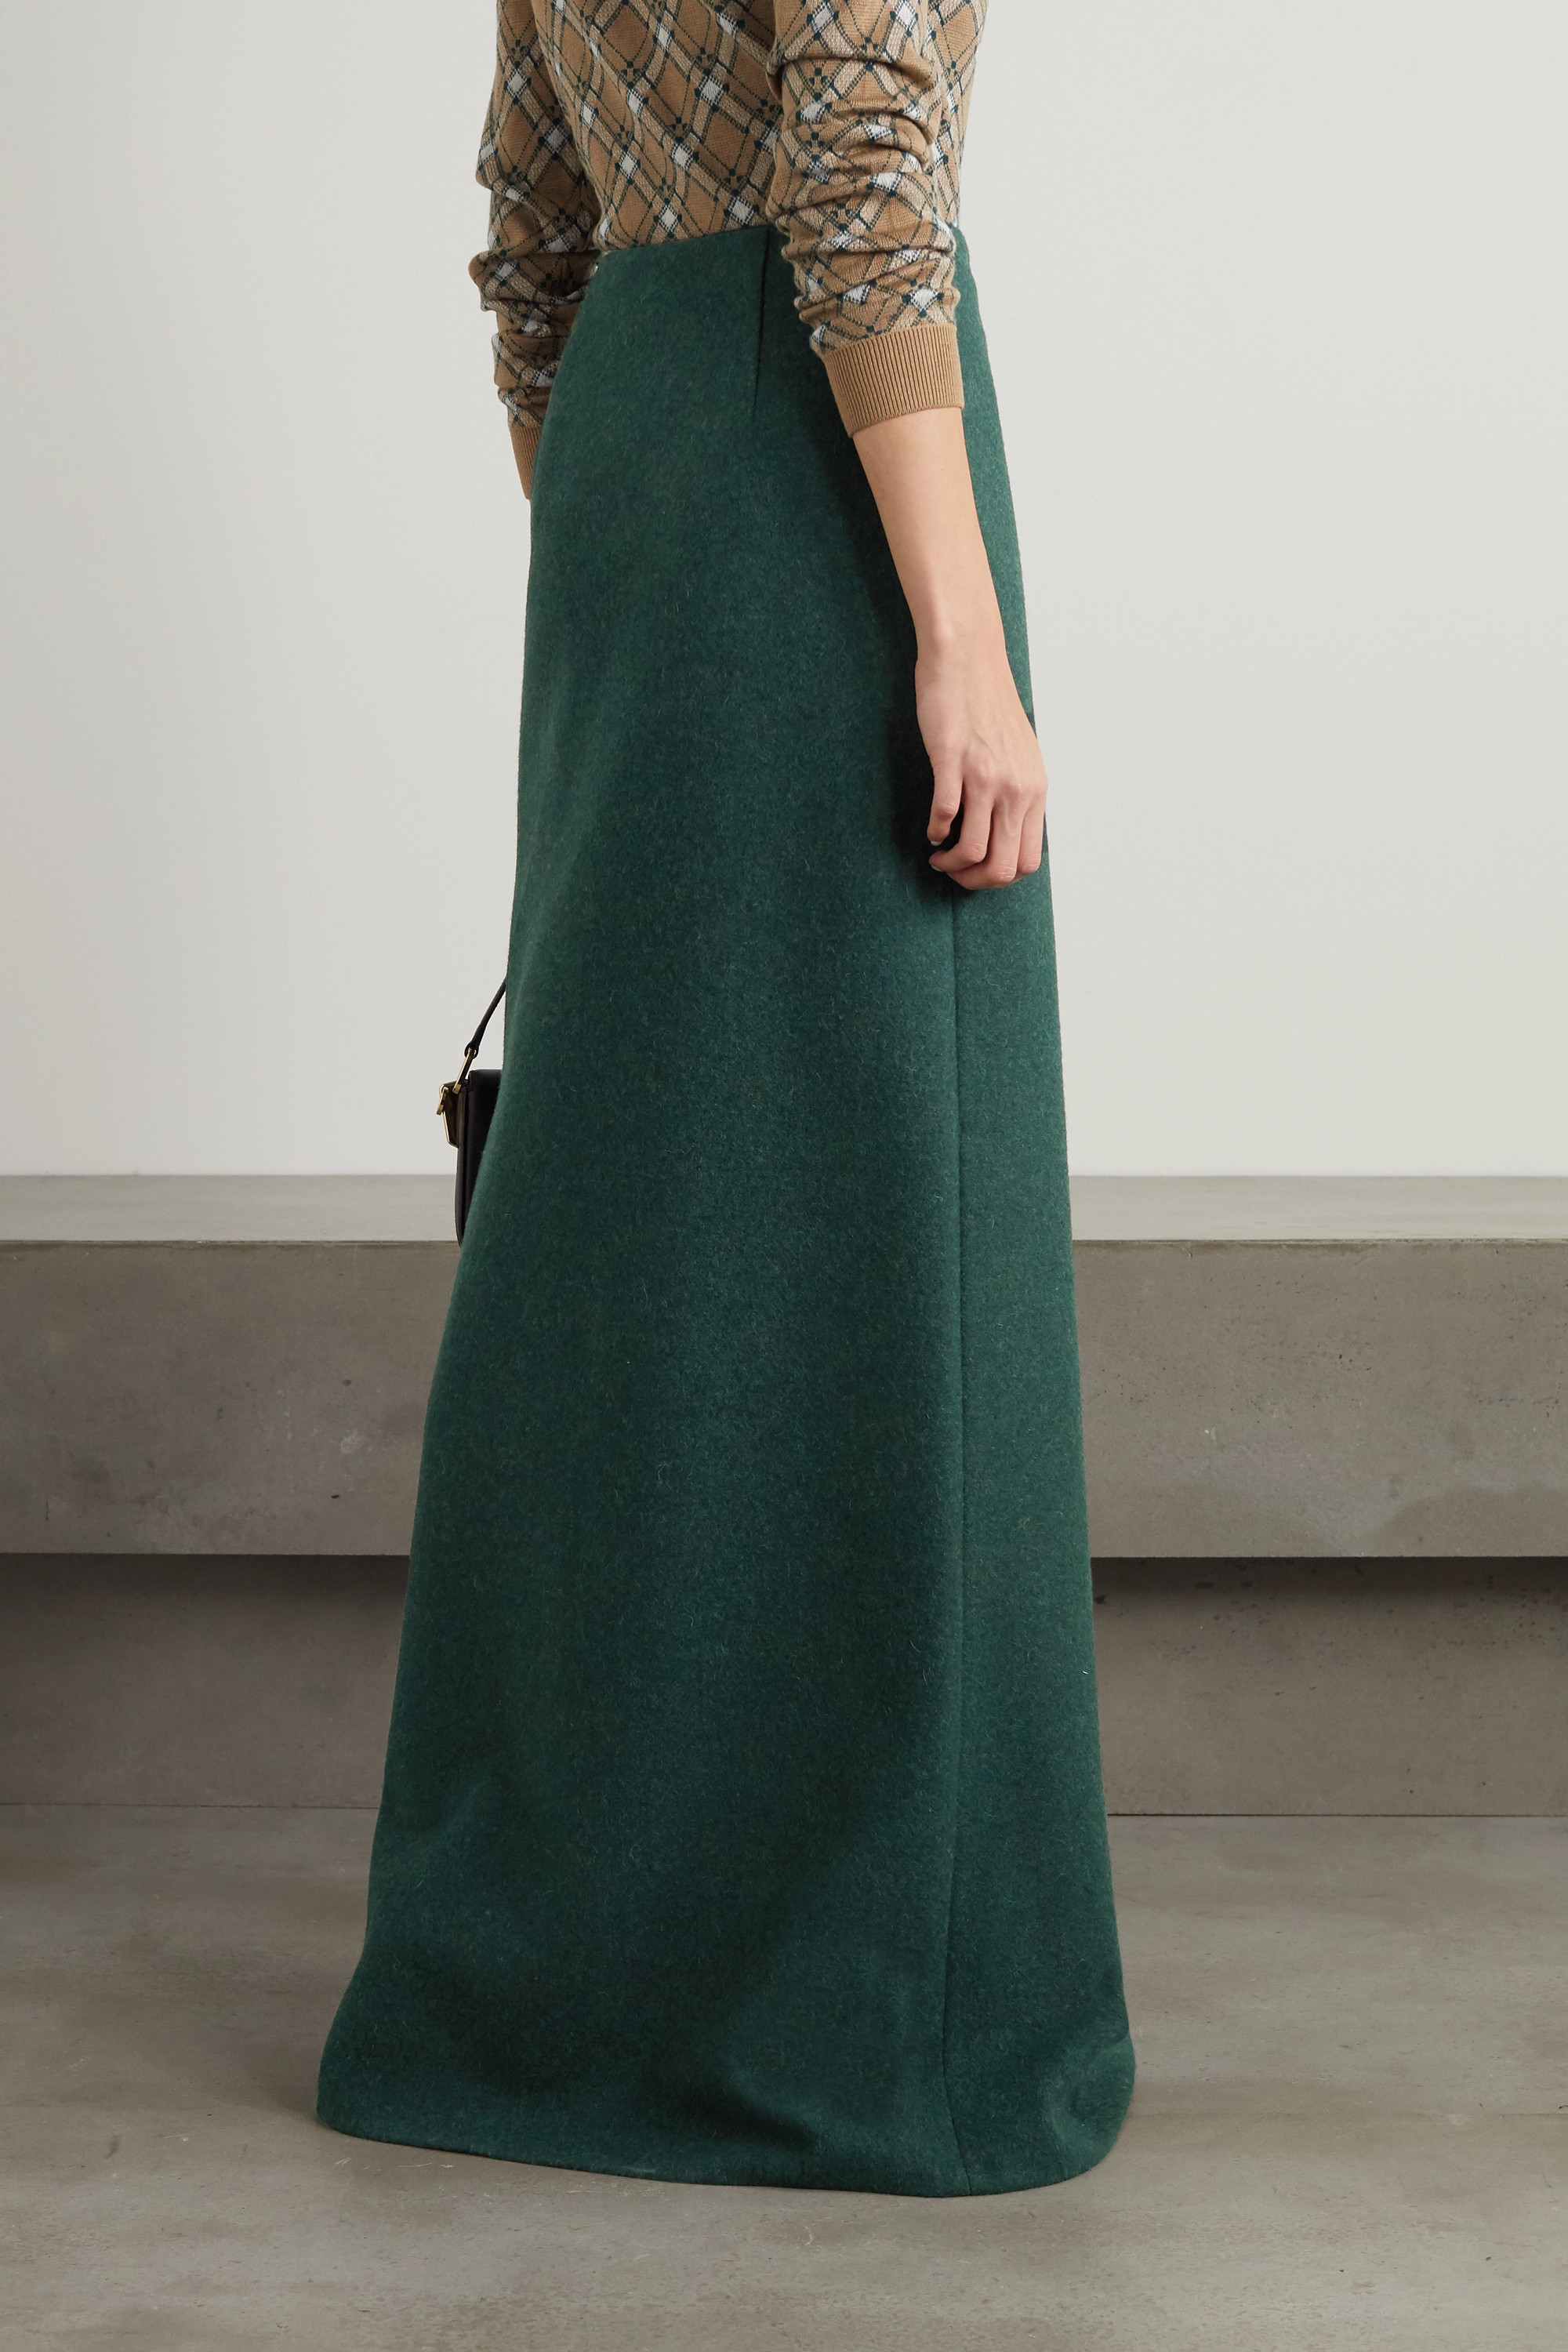 Miu Miu Wool maxi skirt